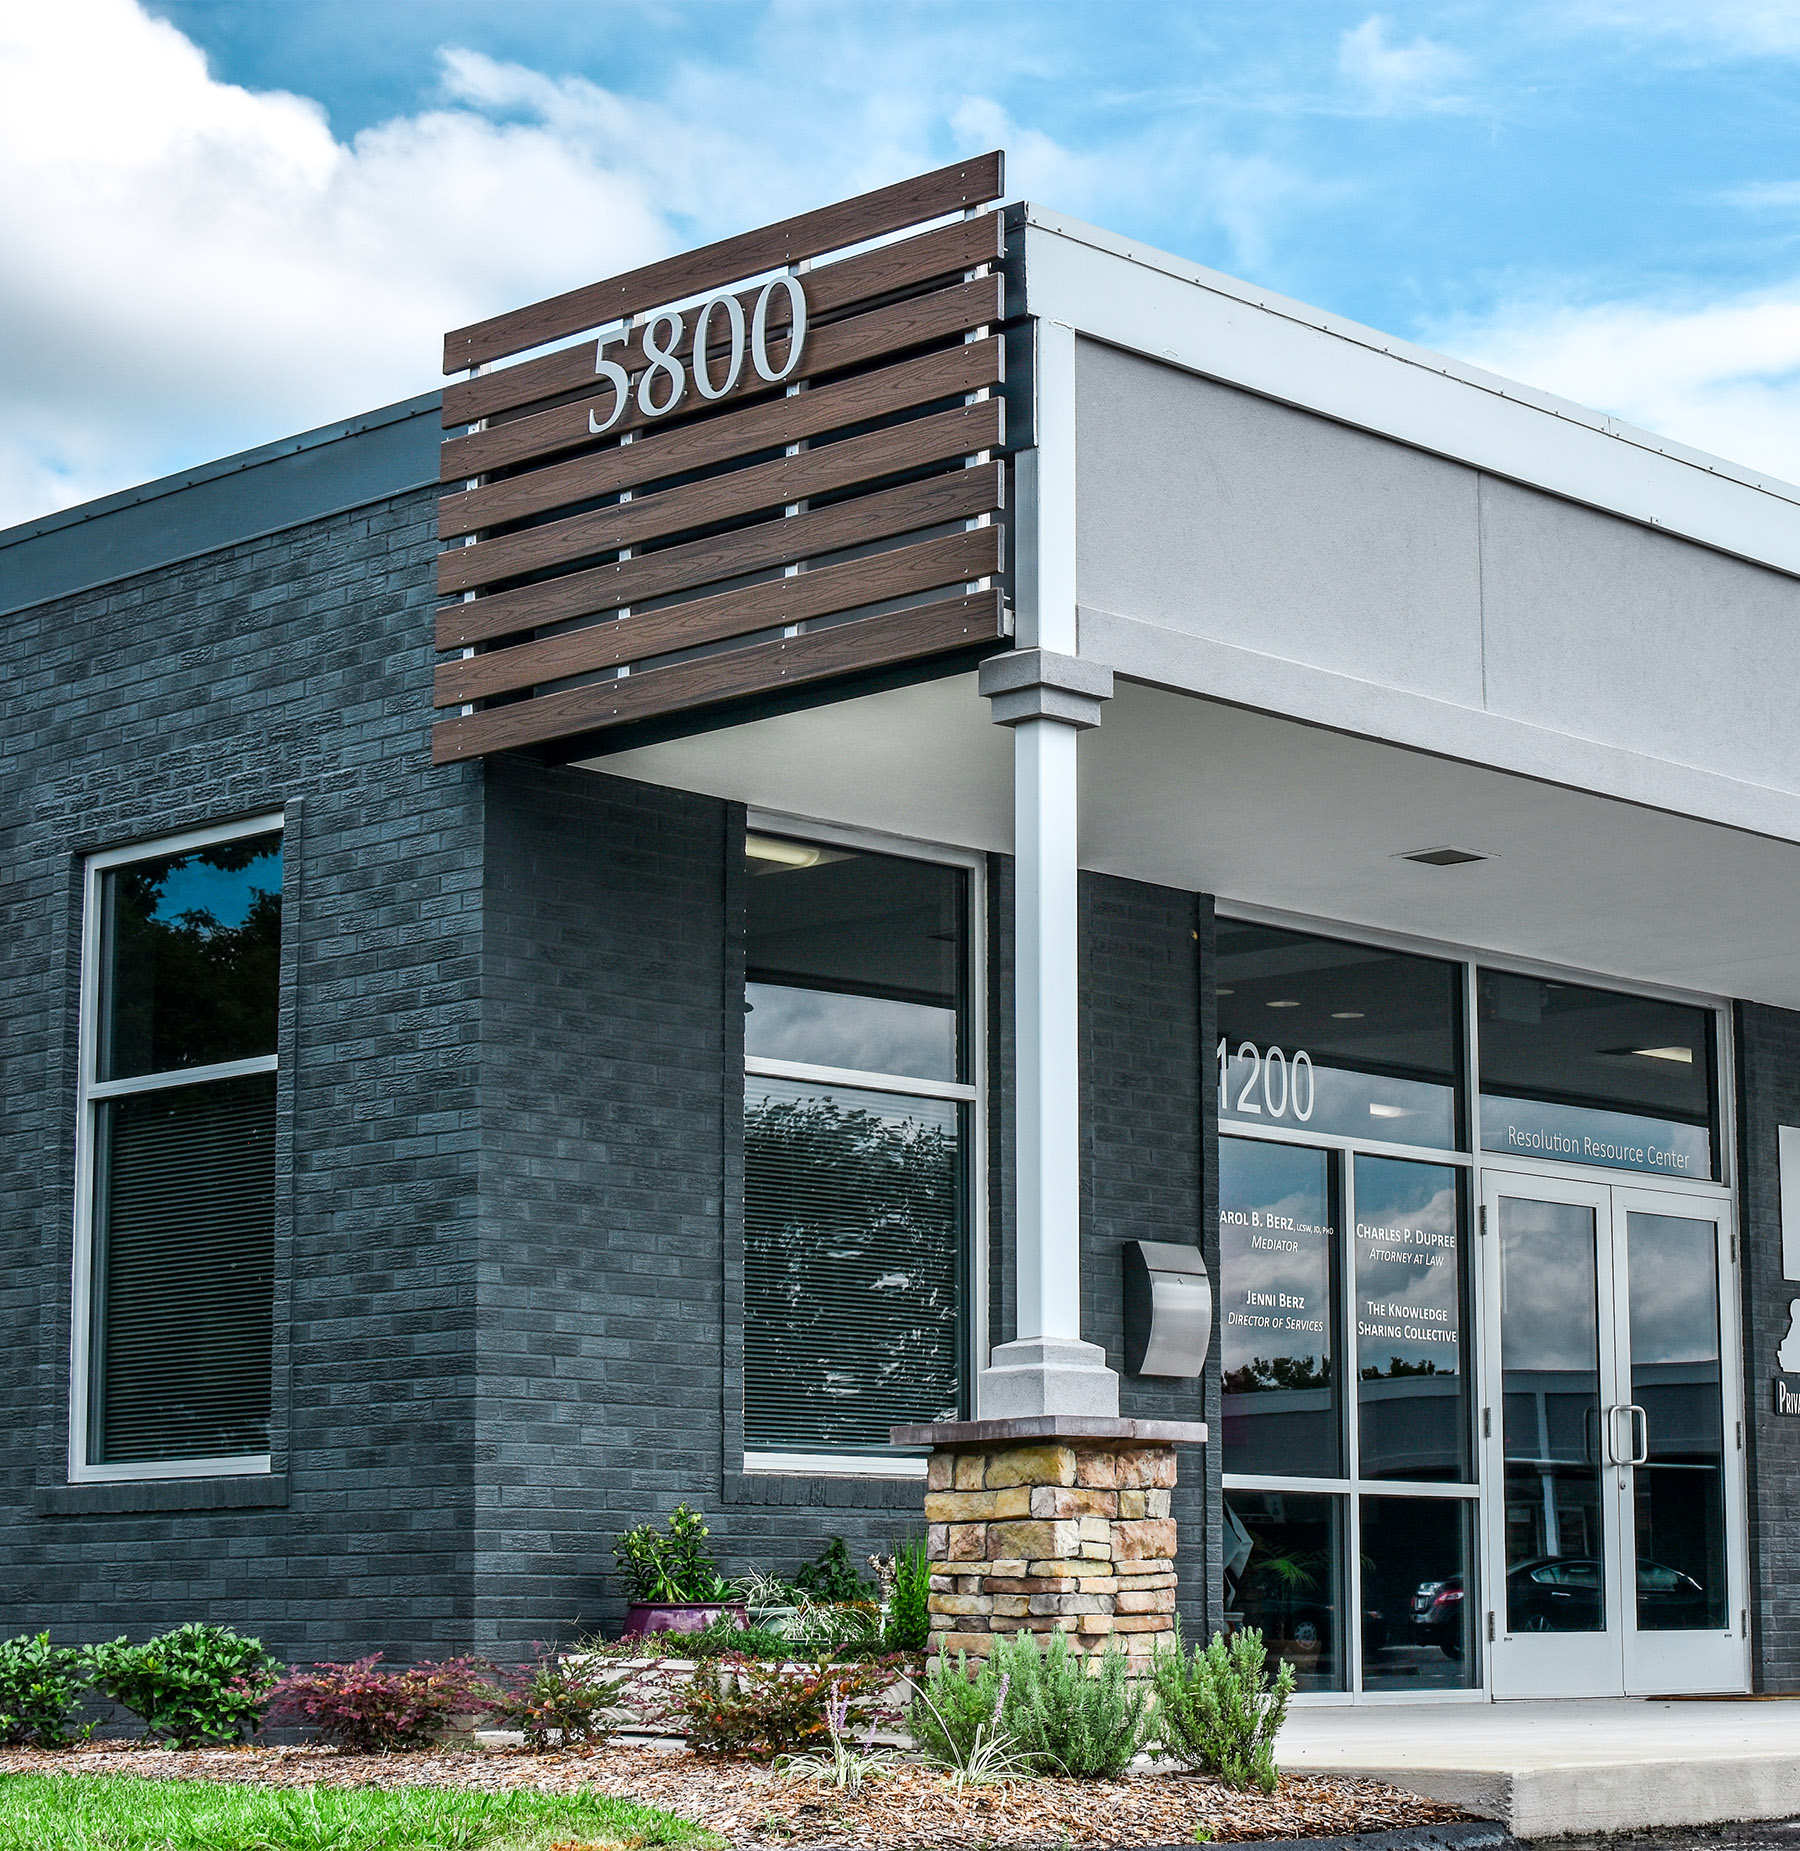 exterior shot of commercial rentals showing the 5800 building